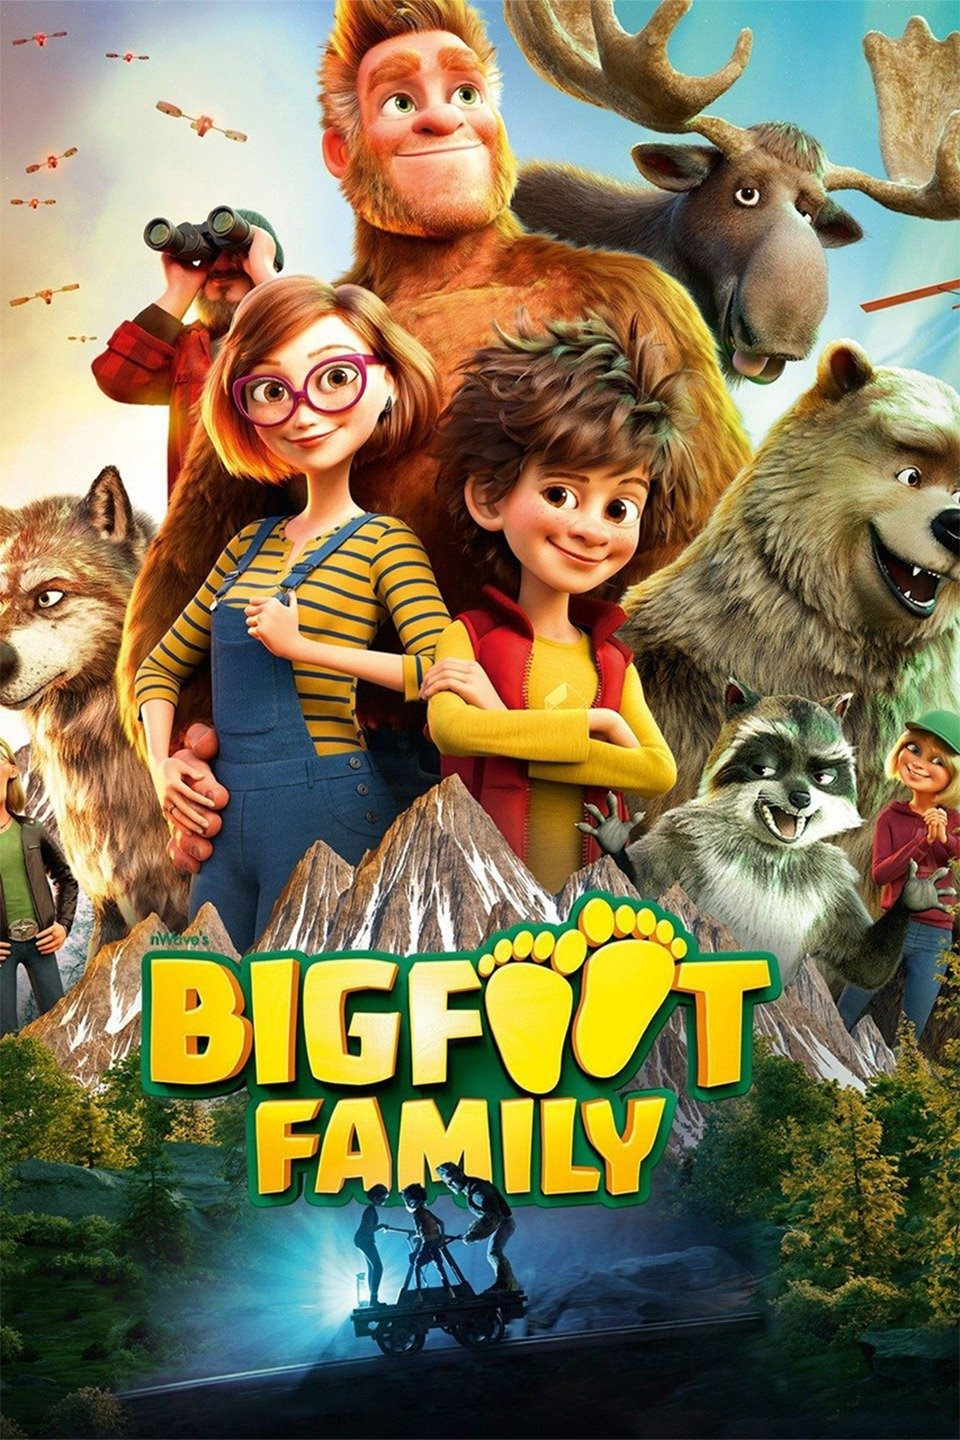 Film protagonist Adam standing with his parents and animal family members. In the background are some robots flying.